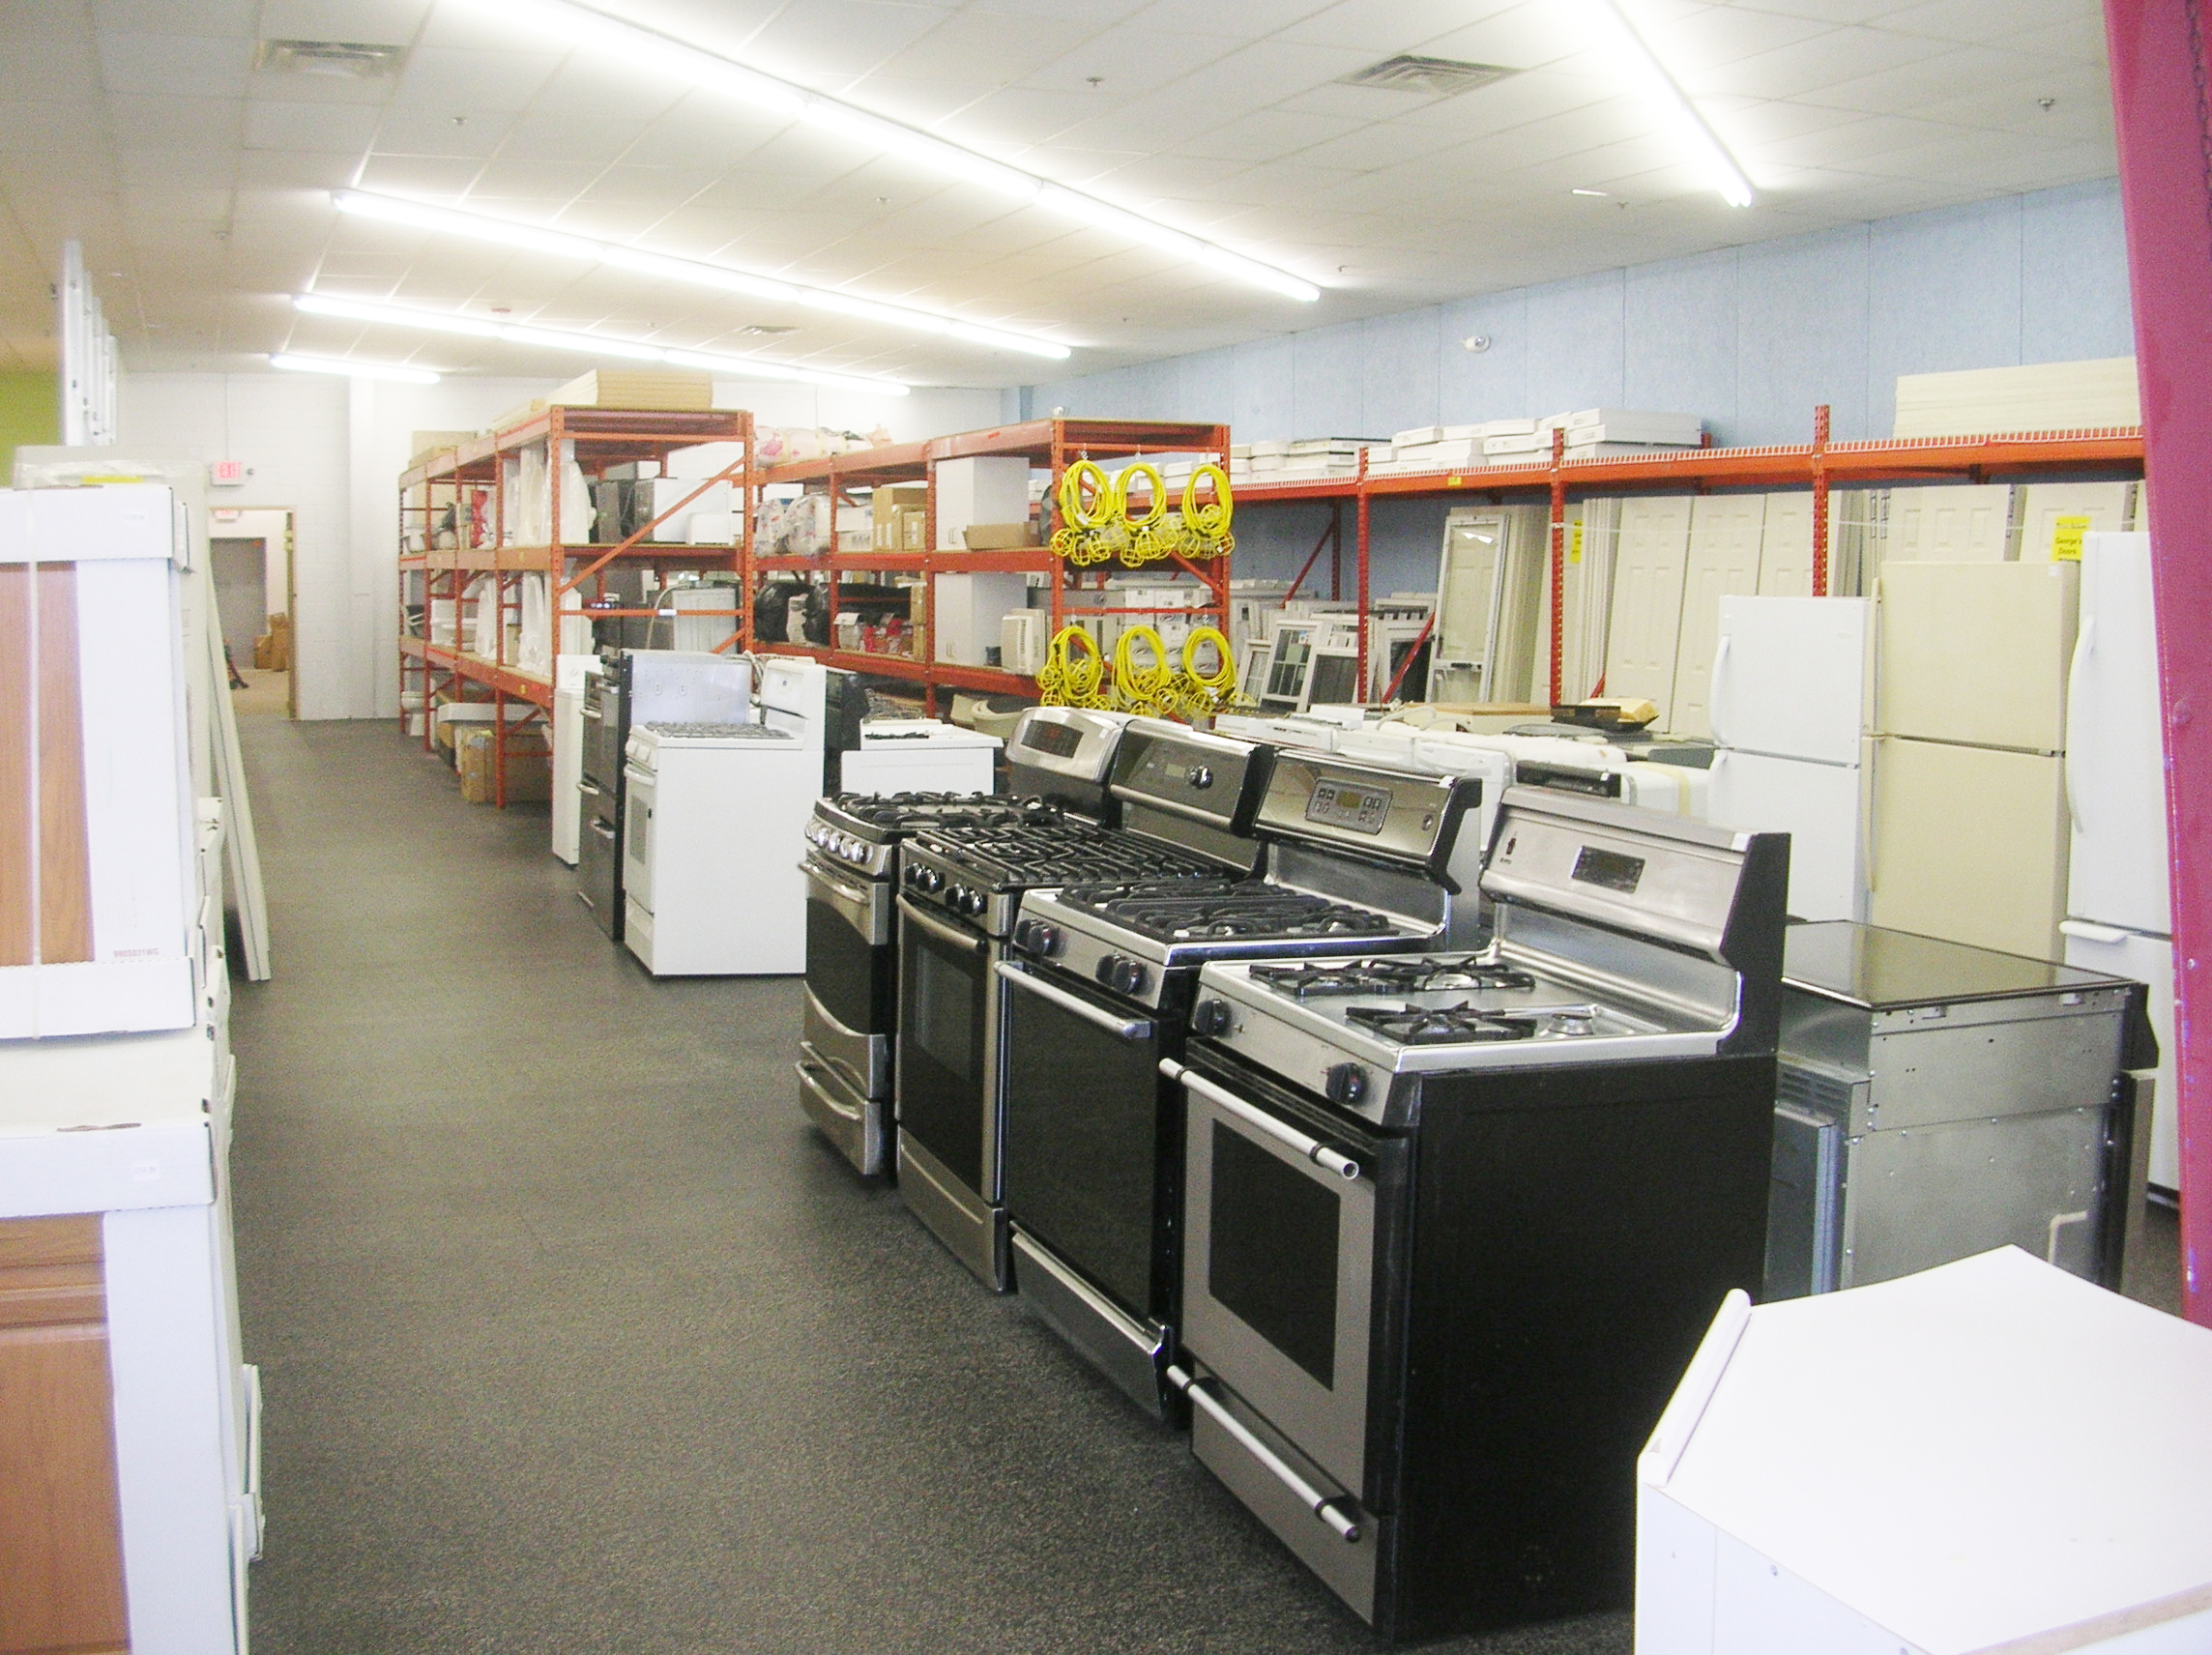 delightful Where To Donate Kitchen Appliances #1: Where to donate used furniture Where to donate used appliances ...